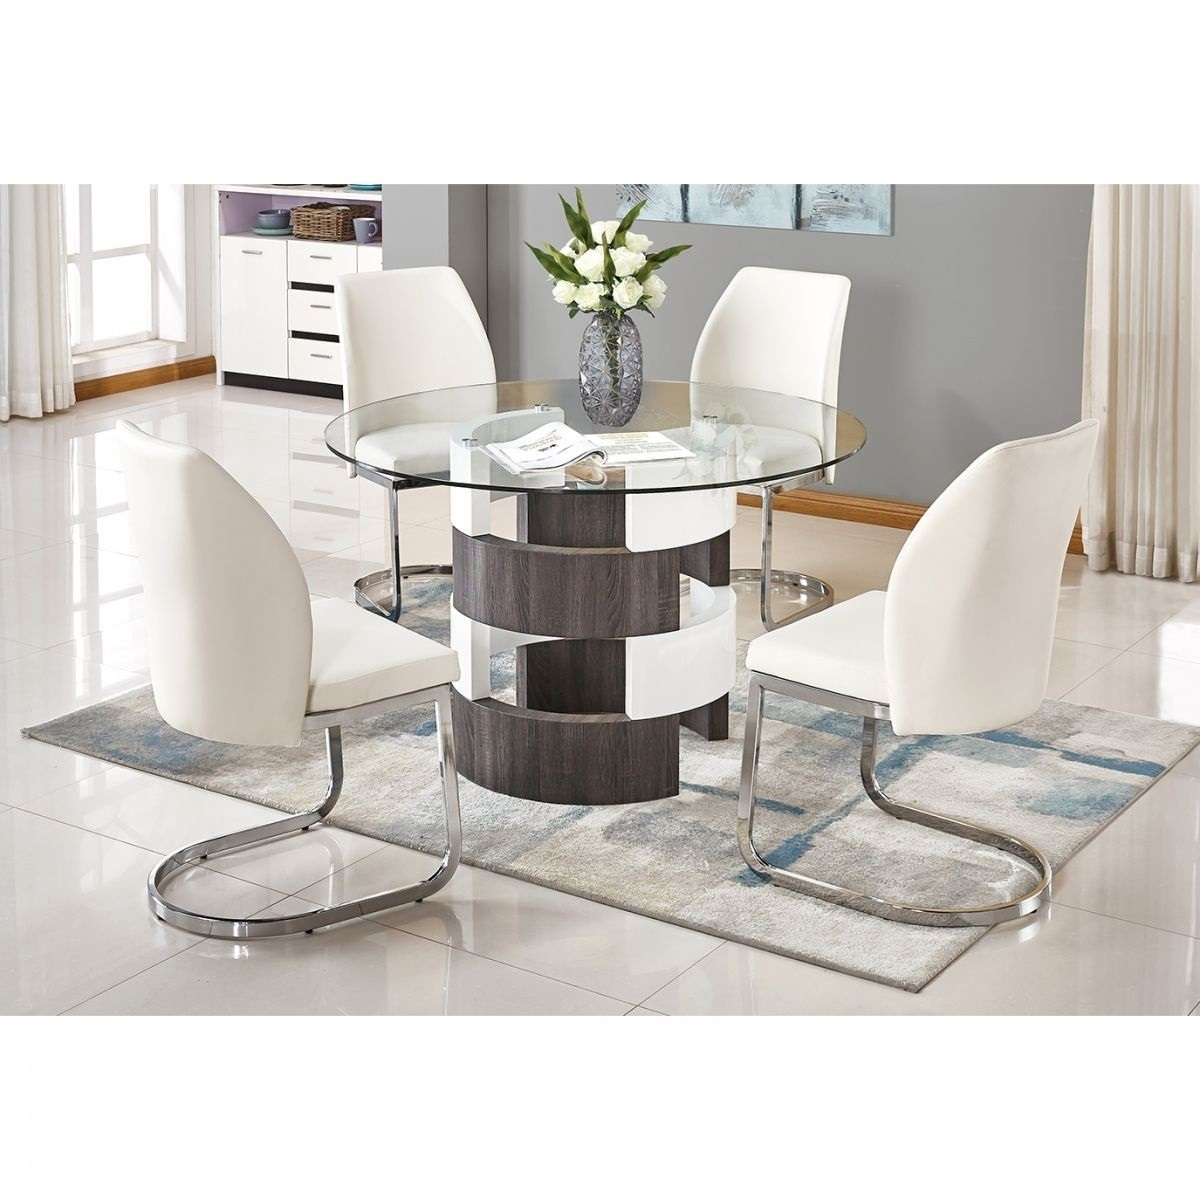 Argot White 5 Pc Dining Room | Badcock & More Pertaining To Current Valencia 5 Piece Round Dining Sets With Uph Seat Side Chairs (Image 5 of 20)